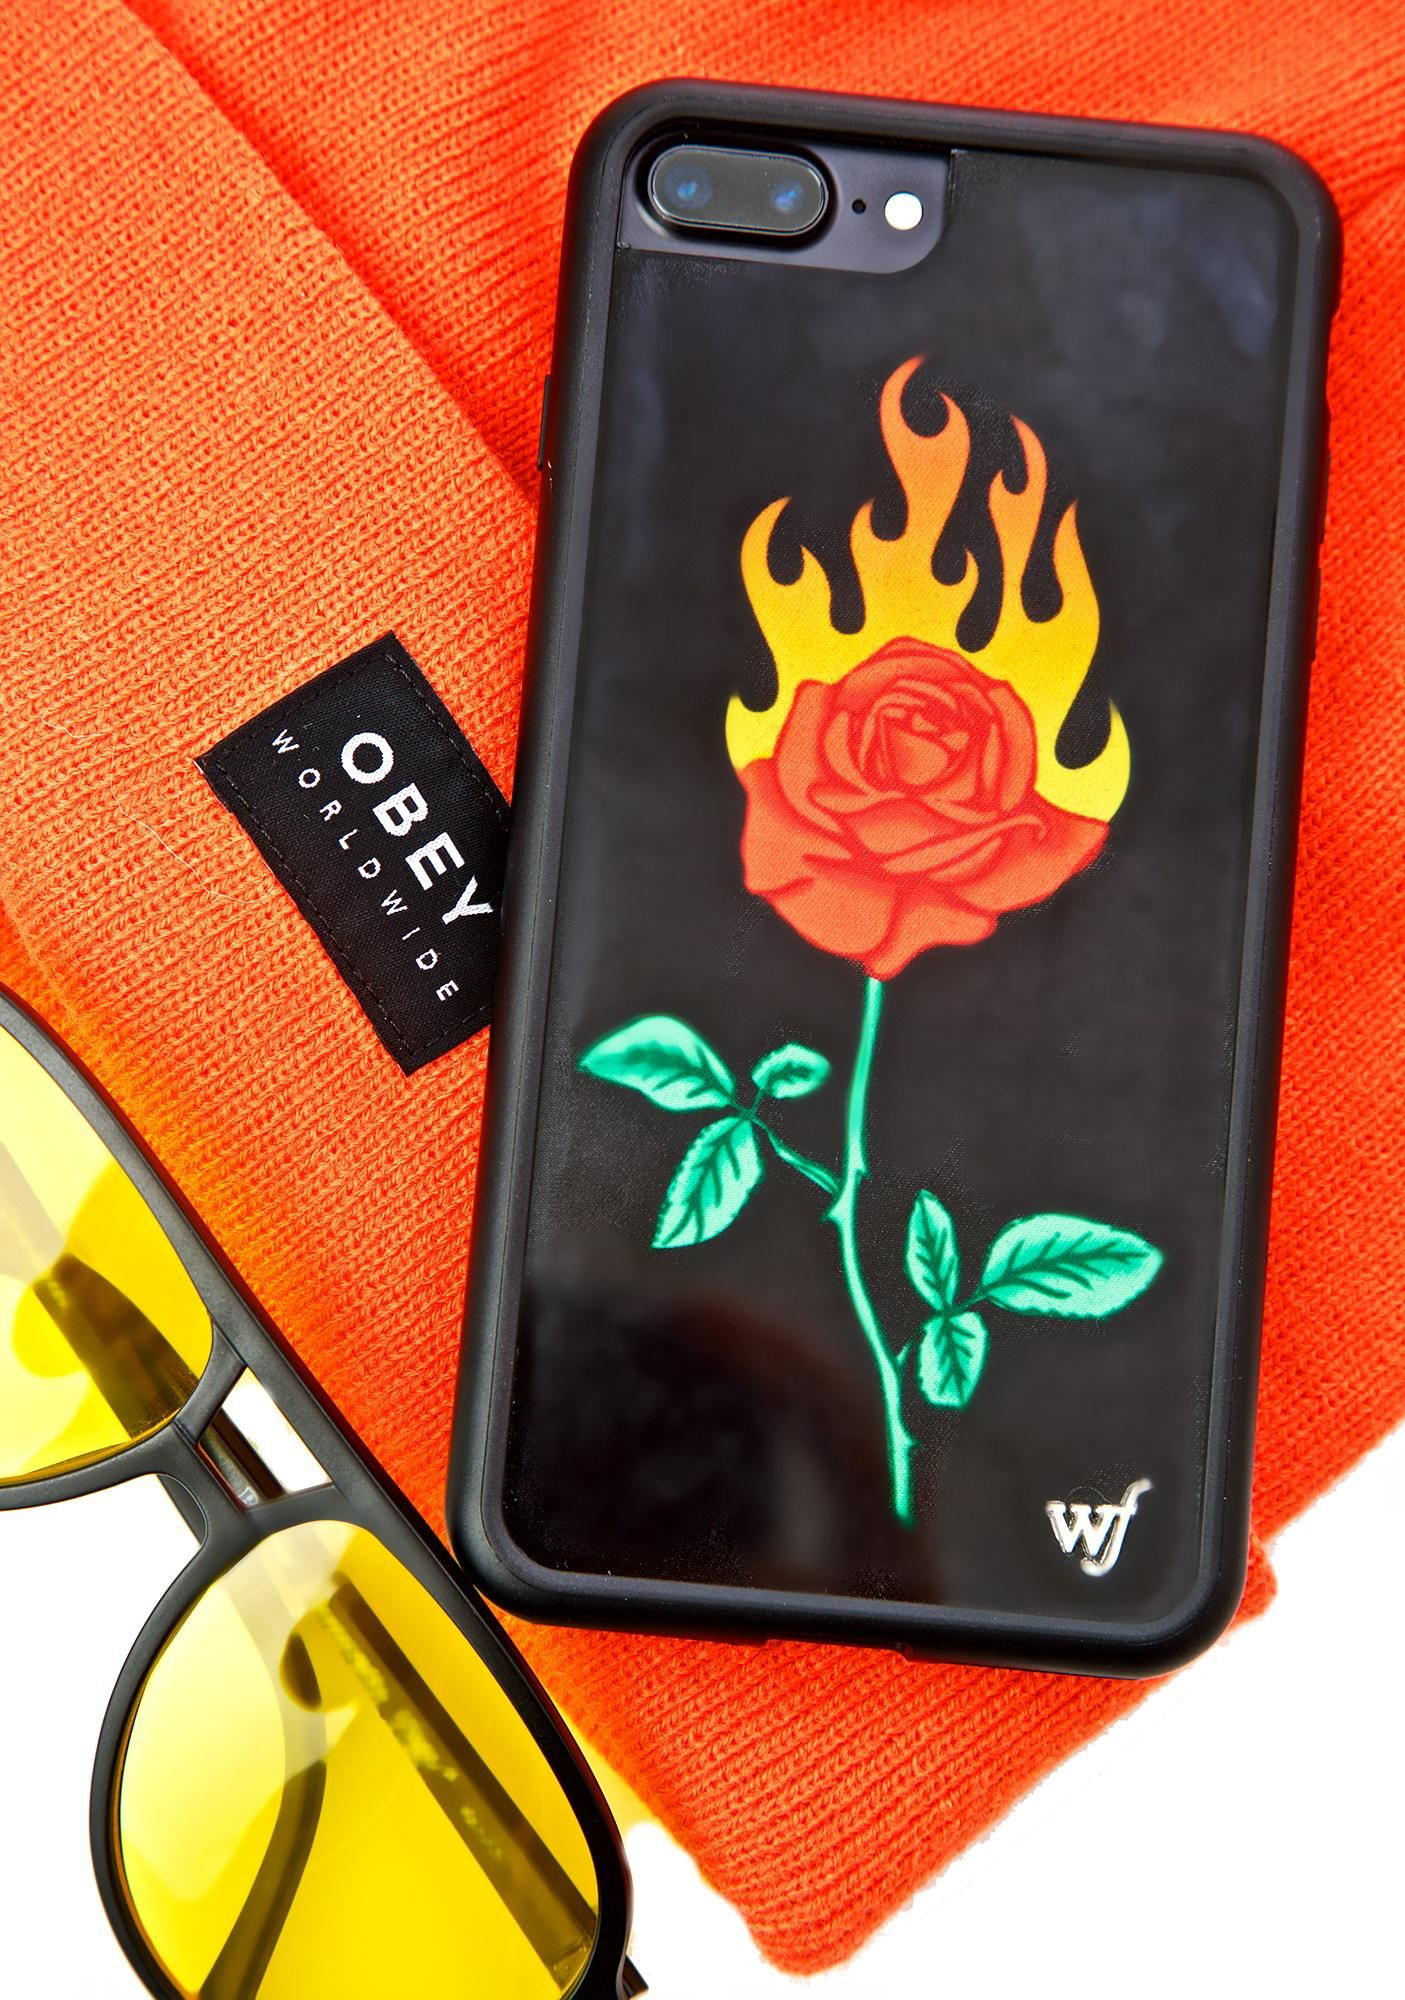 Wildflower Burning Love iPhone Case ...and it's gettin' hotter by the second, bb! This phone case features a black construction that fits snugly around yer phone and has a flaming rose on the back.